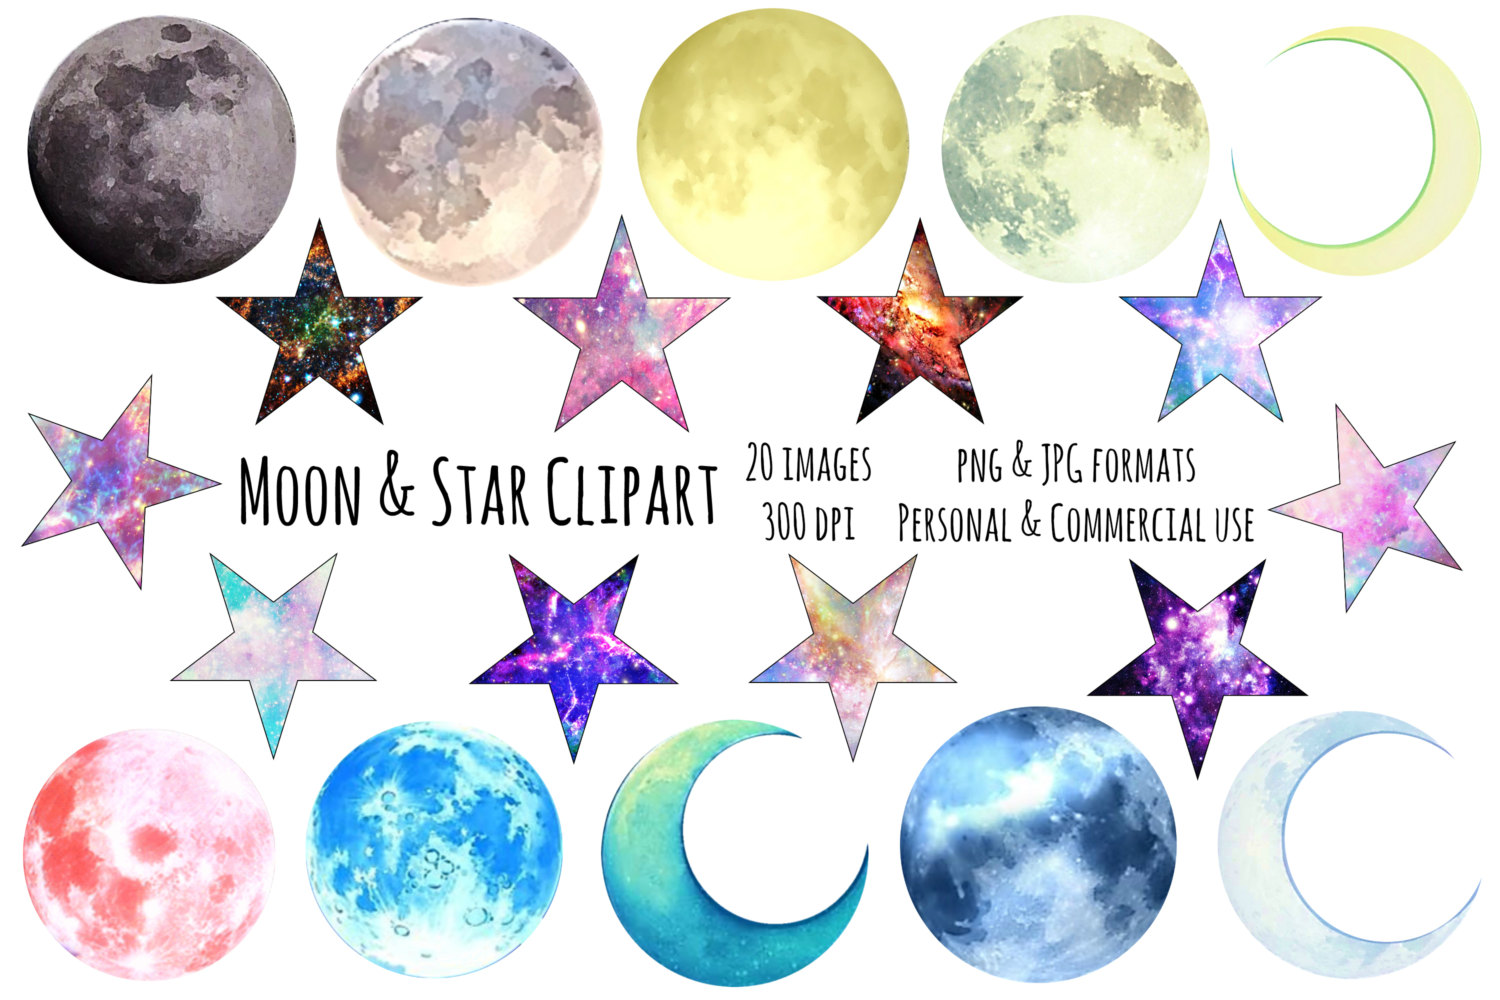 Moon clipart space #10